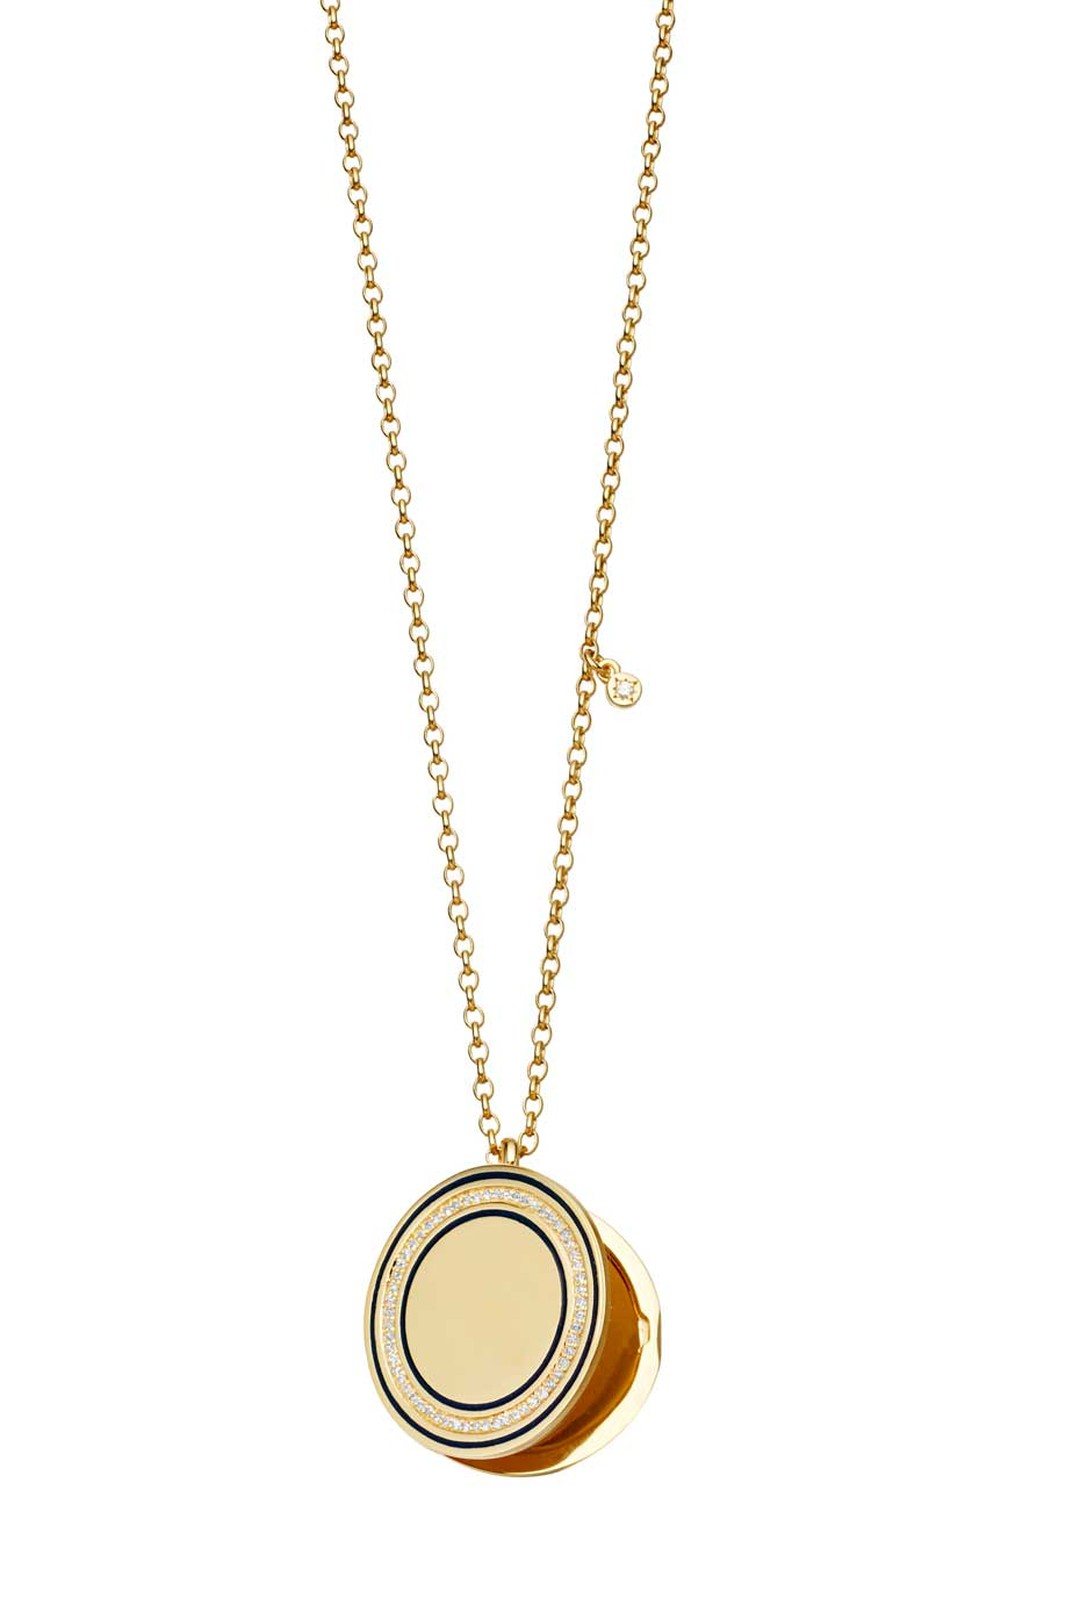 Designed by Astley Clarke's creative director Lorna Watson, the Giant Midnight Cosmos locket in yellow gold with diamonds features a dark blue enamel circle.